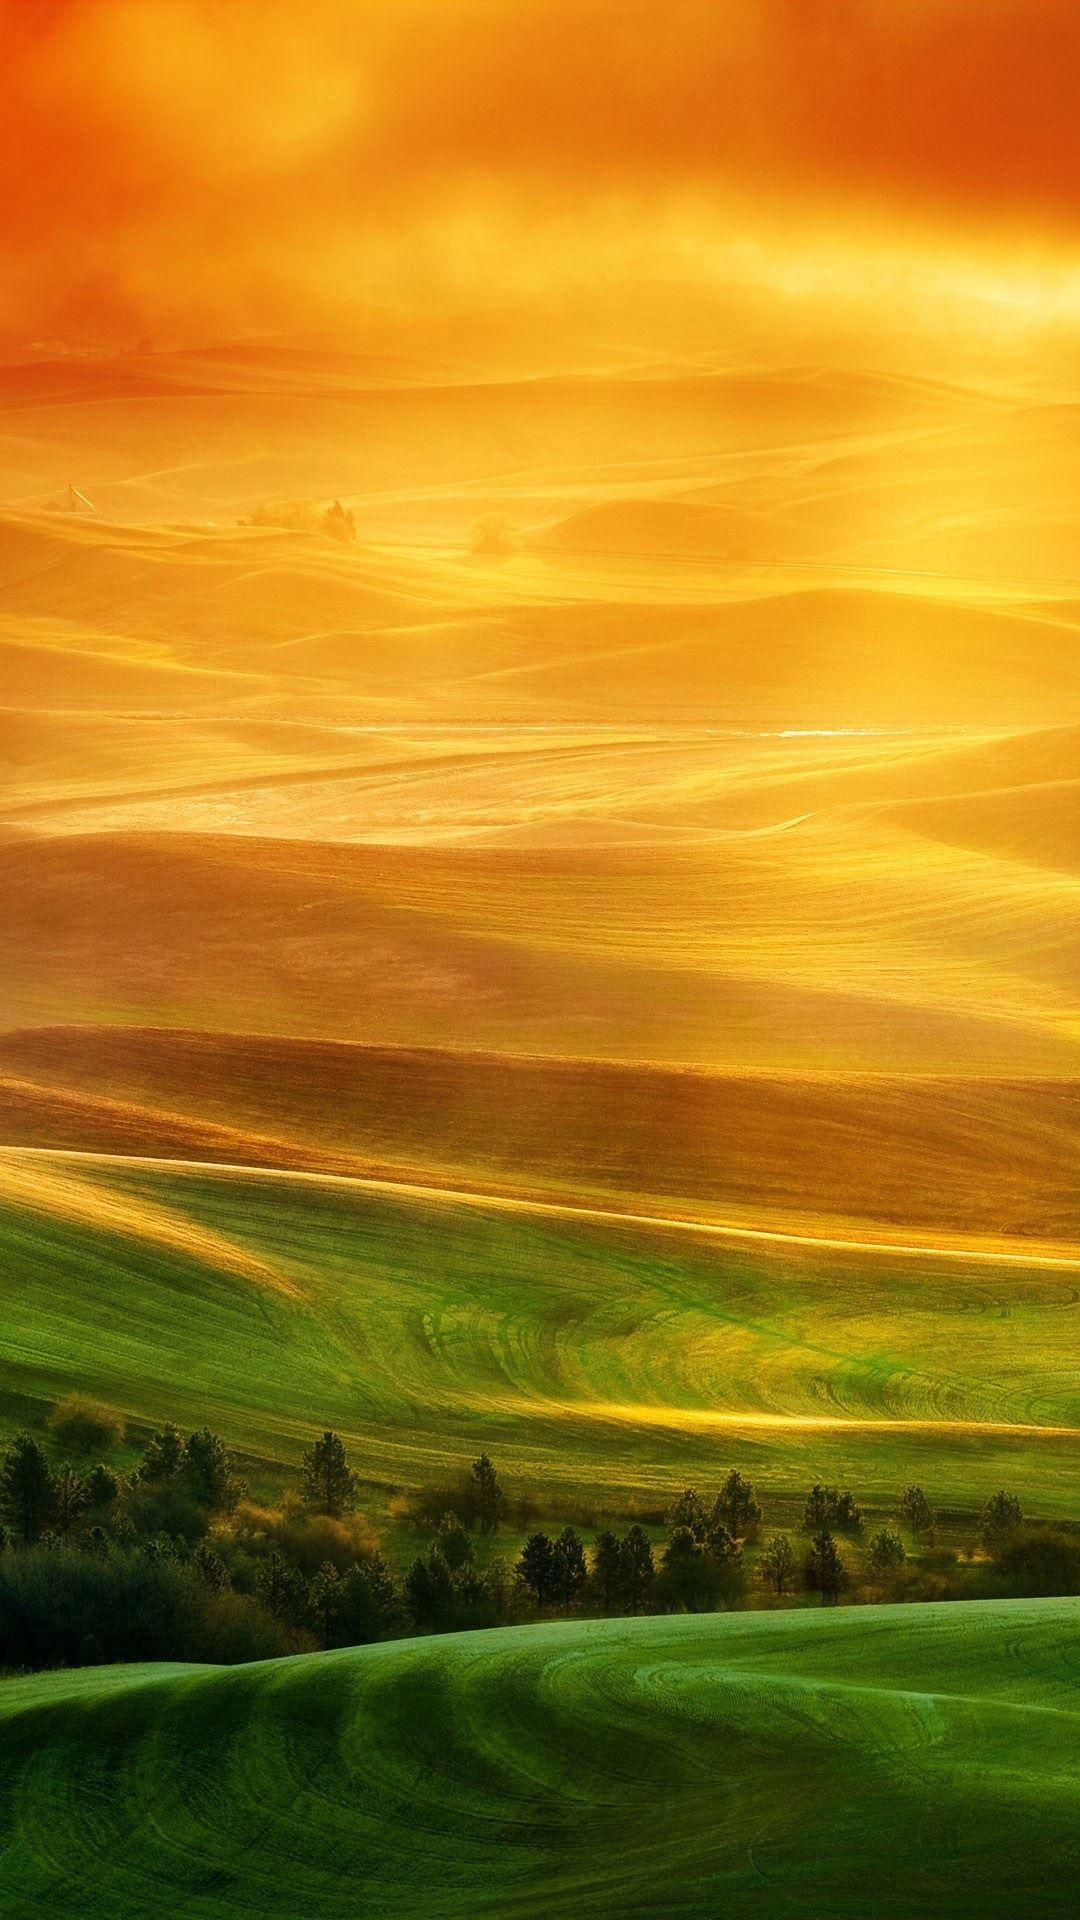 HTC One X Full HD Green Fields Sunset Android Wallpapers free download